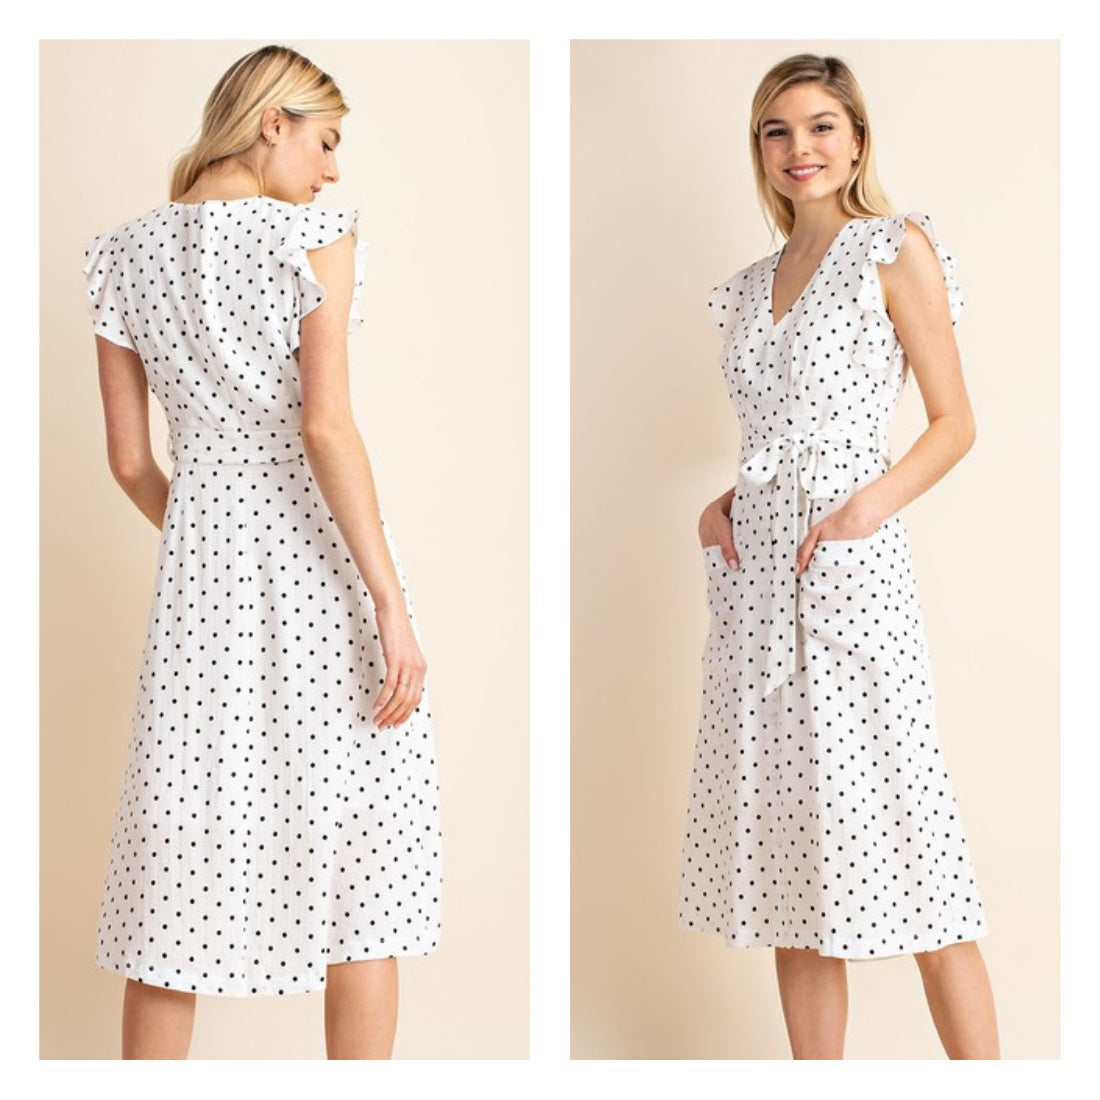 Classic white cotton polka dot a-line dress with pockets.